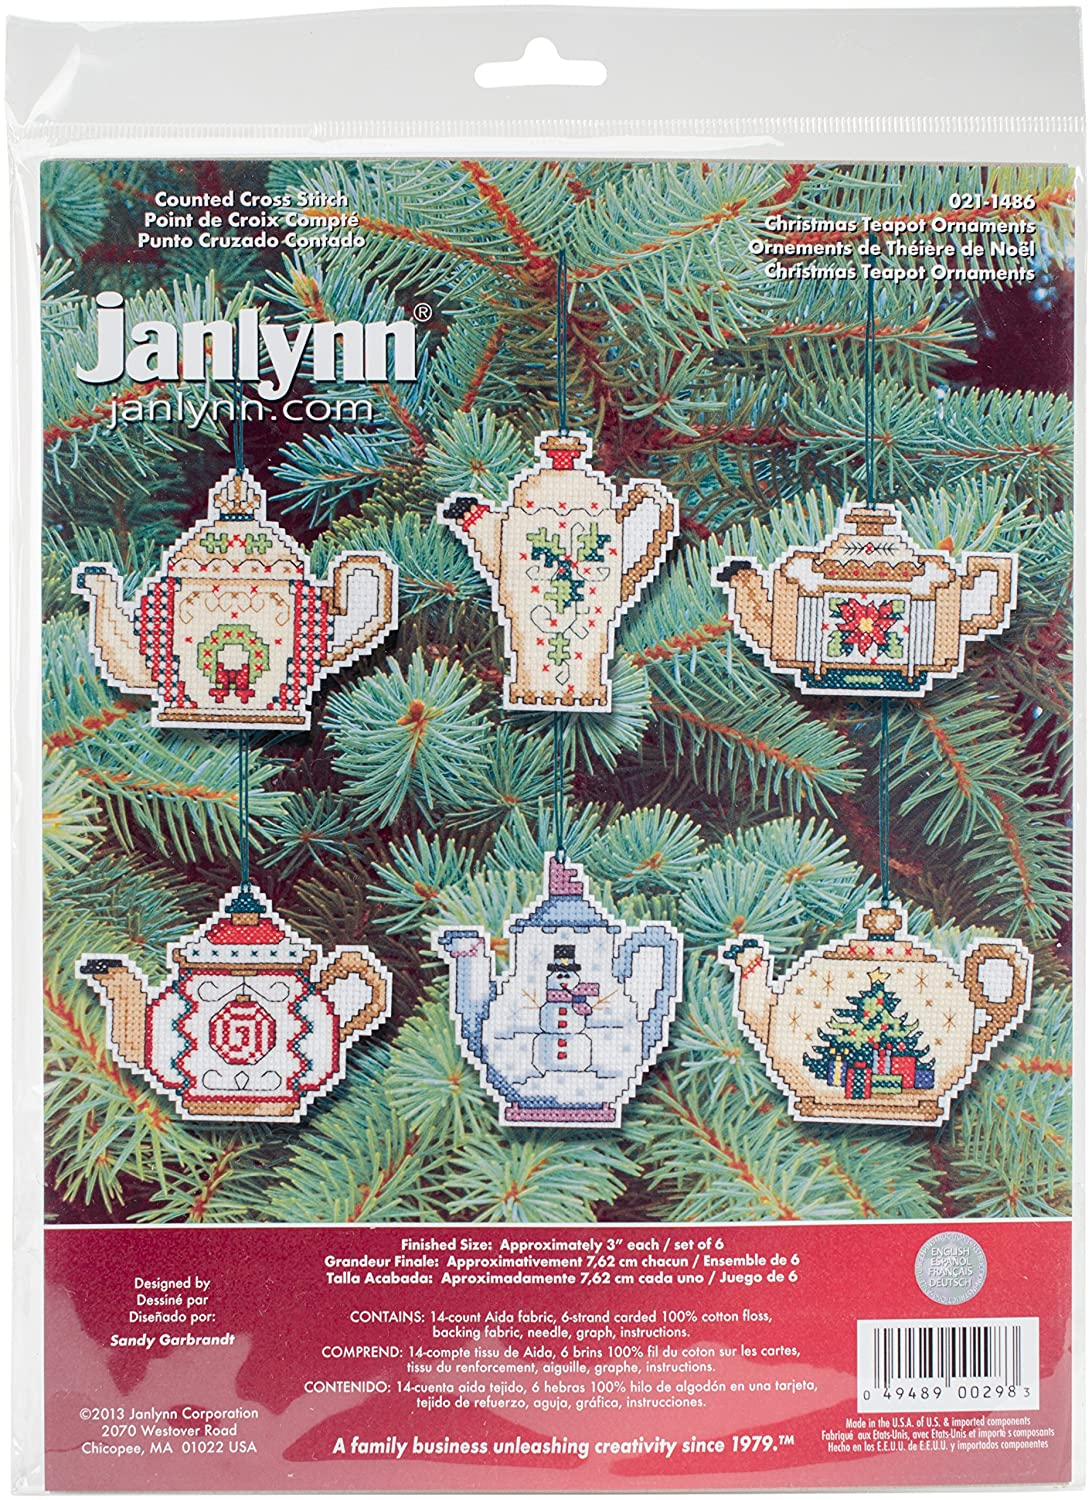 Prima Marketing 21-1486 14 Count Christmas Teapot Ornaments Counted Cross Stitch Kit, 3-Inch, Set of 6 Janlynn